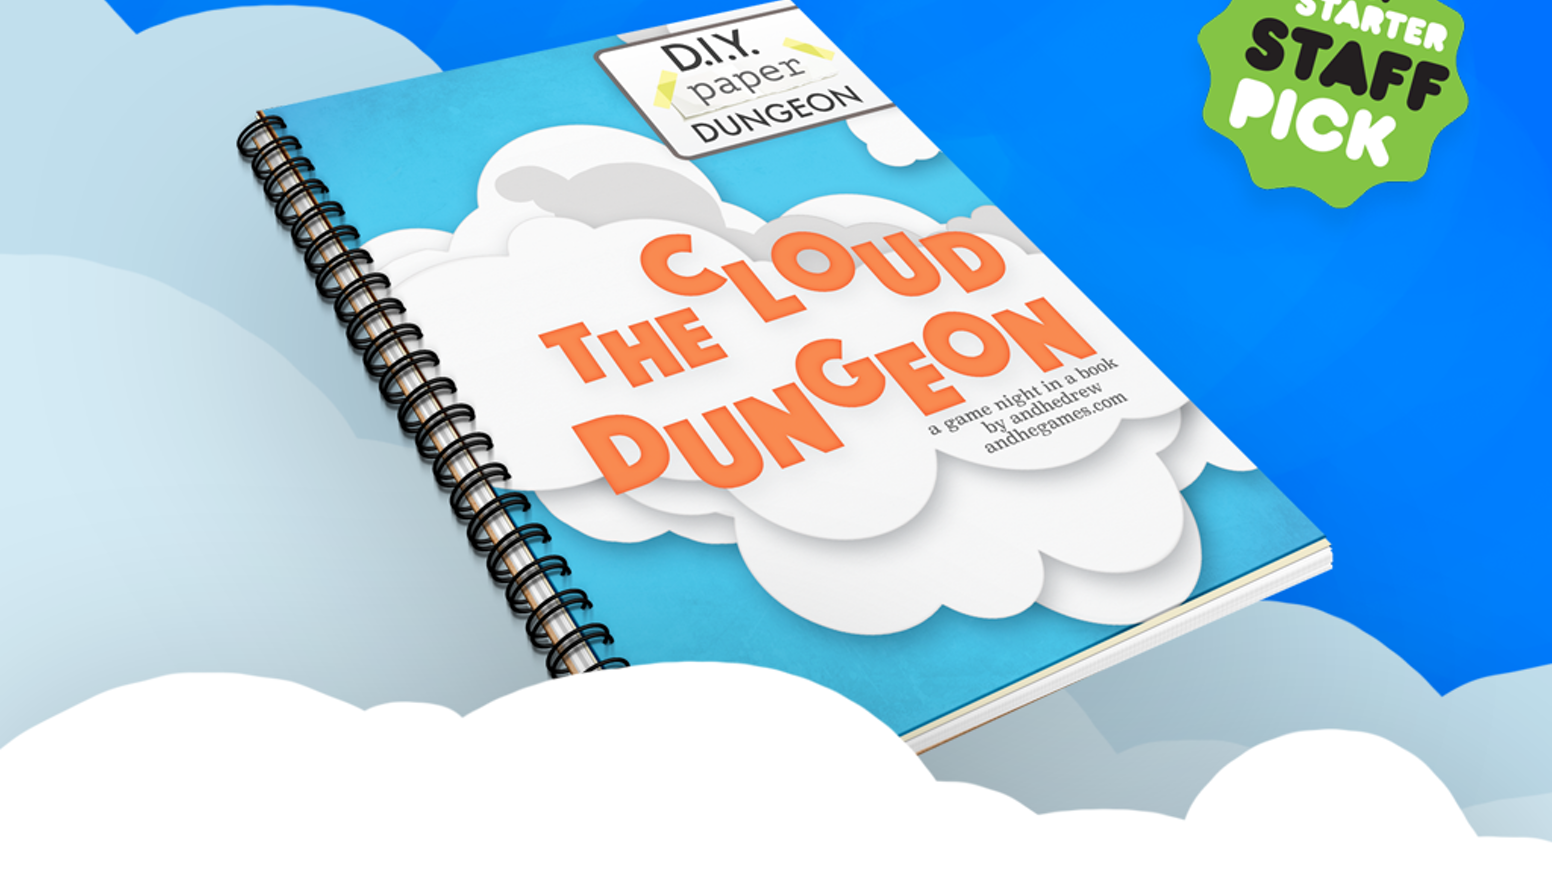 The Cloud Dungeon D I Y Paper Craft Rpg Game Diy Fun By